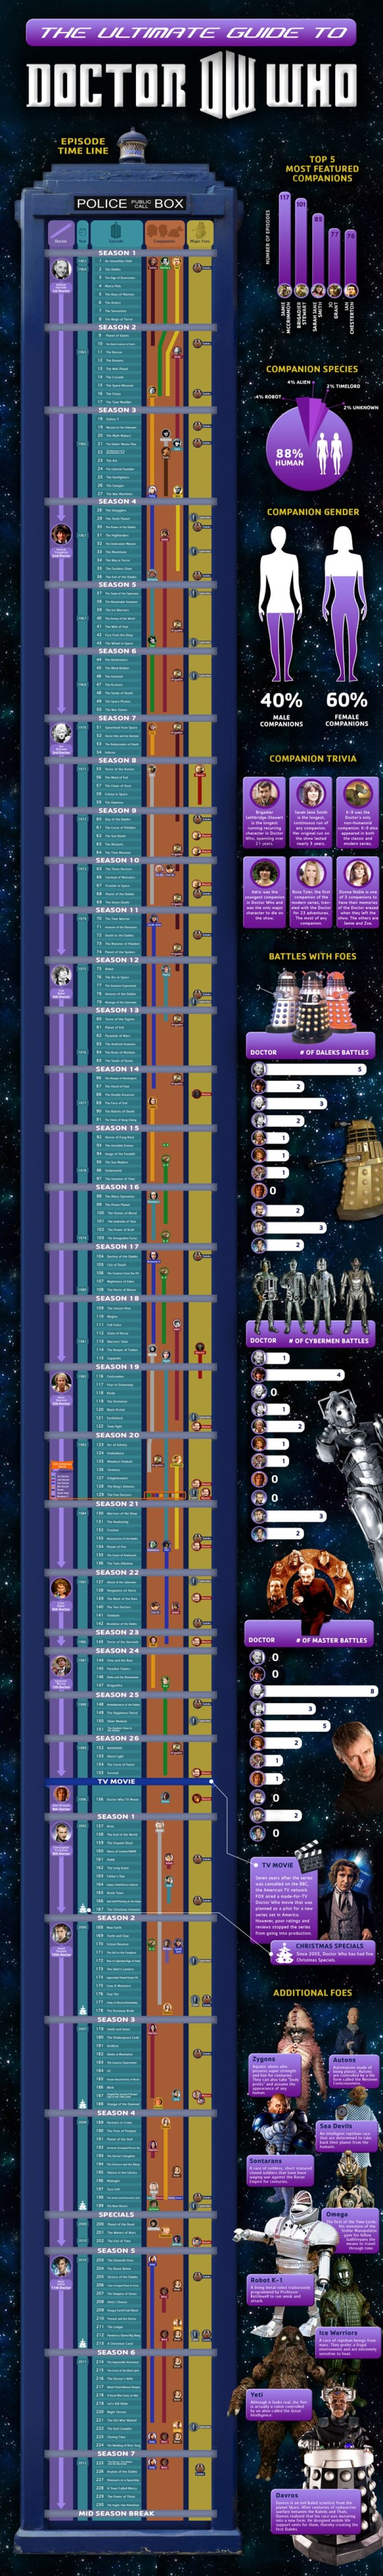 Not sure my walls are tall enough to fit this poster. Ahhh yes! I'll just hang it in my TaRDiS! - Dr. Who Timeline [ INFOGRAPHIC ] | Infographic File